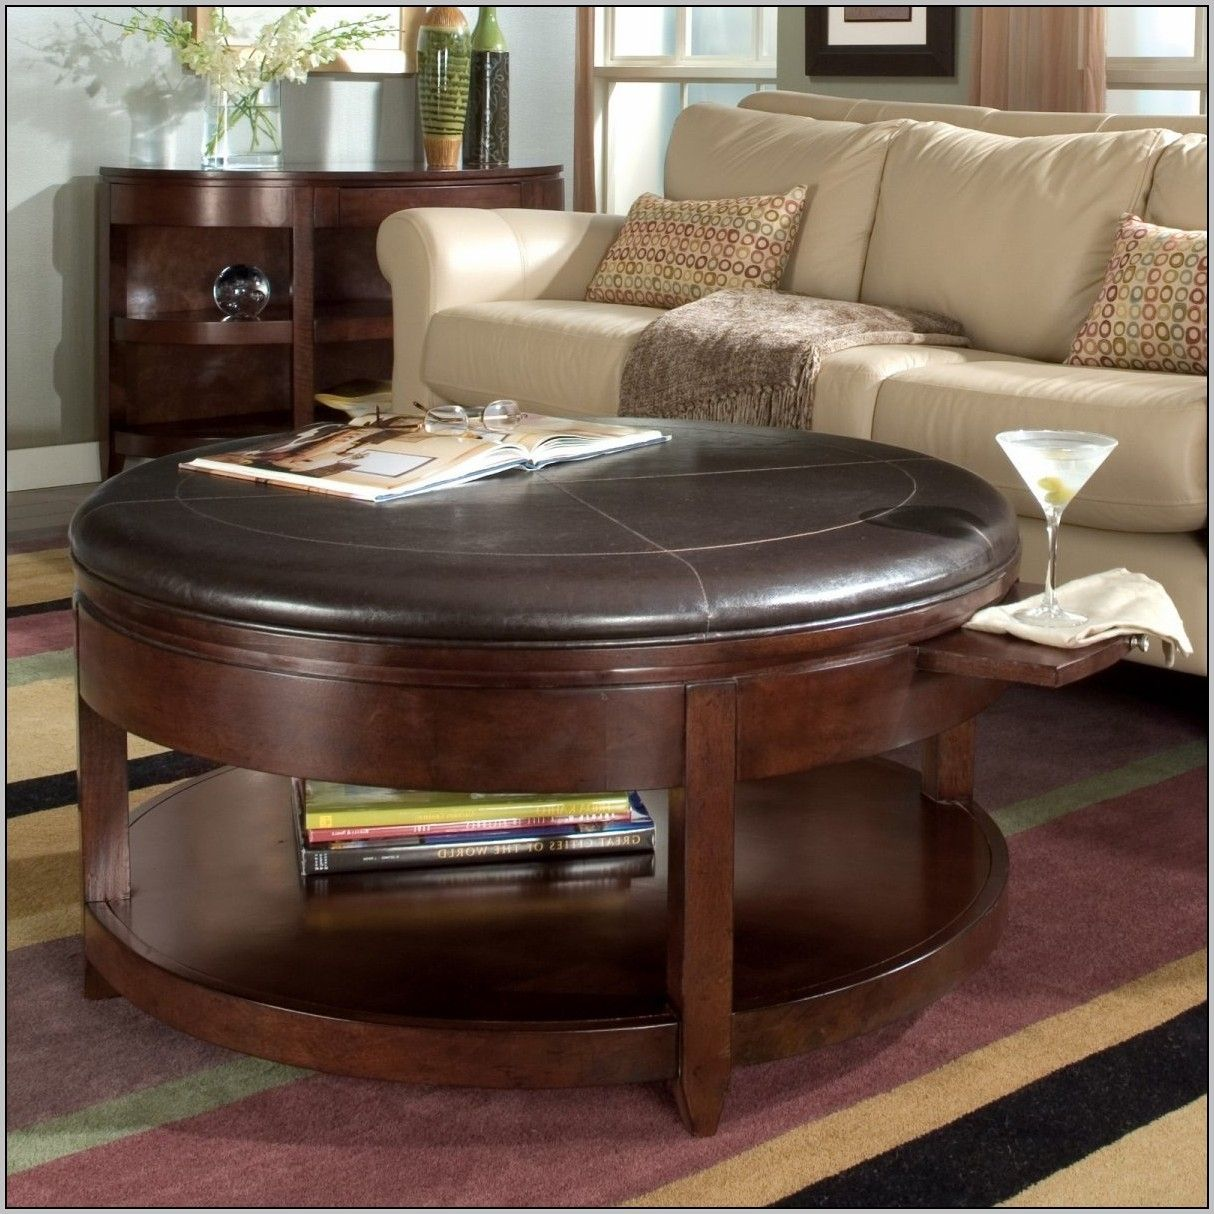 Coffee Table With Storage Cubes.Round Coffee Table With Storage Cubes Coffee Table Leather